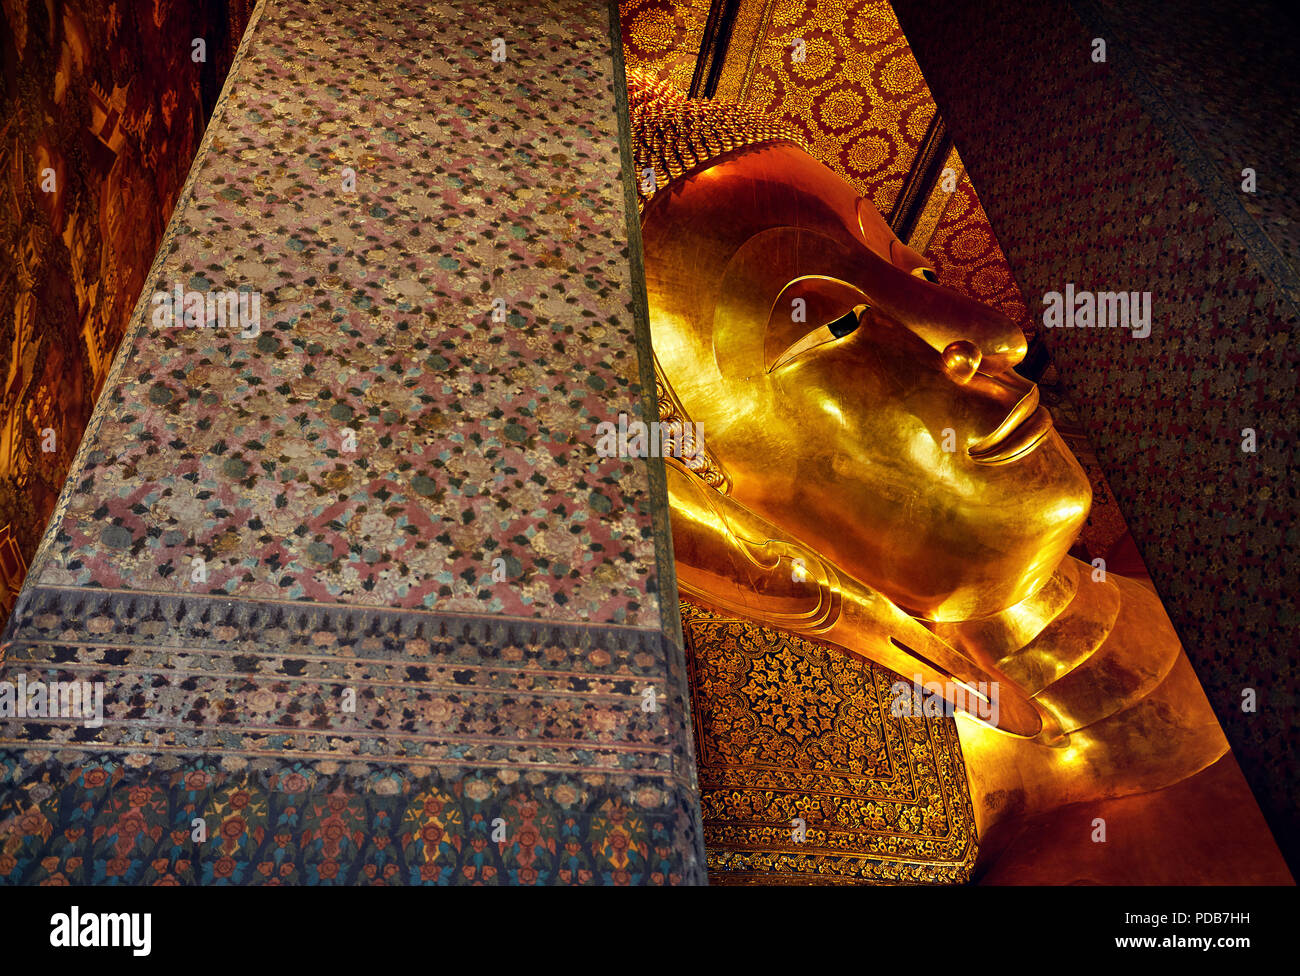 Famous Statue of Big Golden Buddha in wat Pho temple in Bangkok, Thailand. Symbol of Buddhist culture. Stock Photo